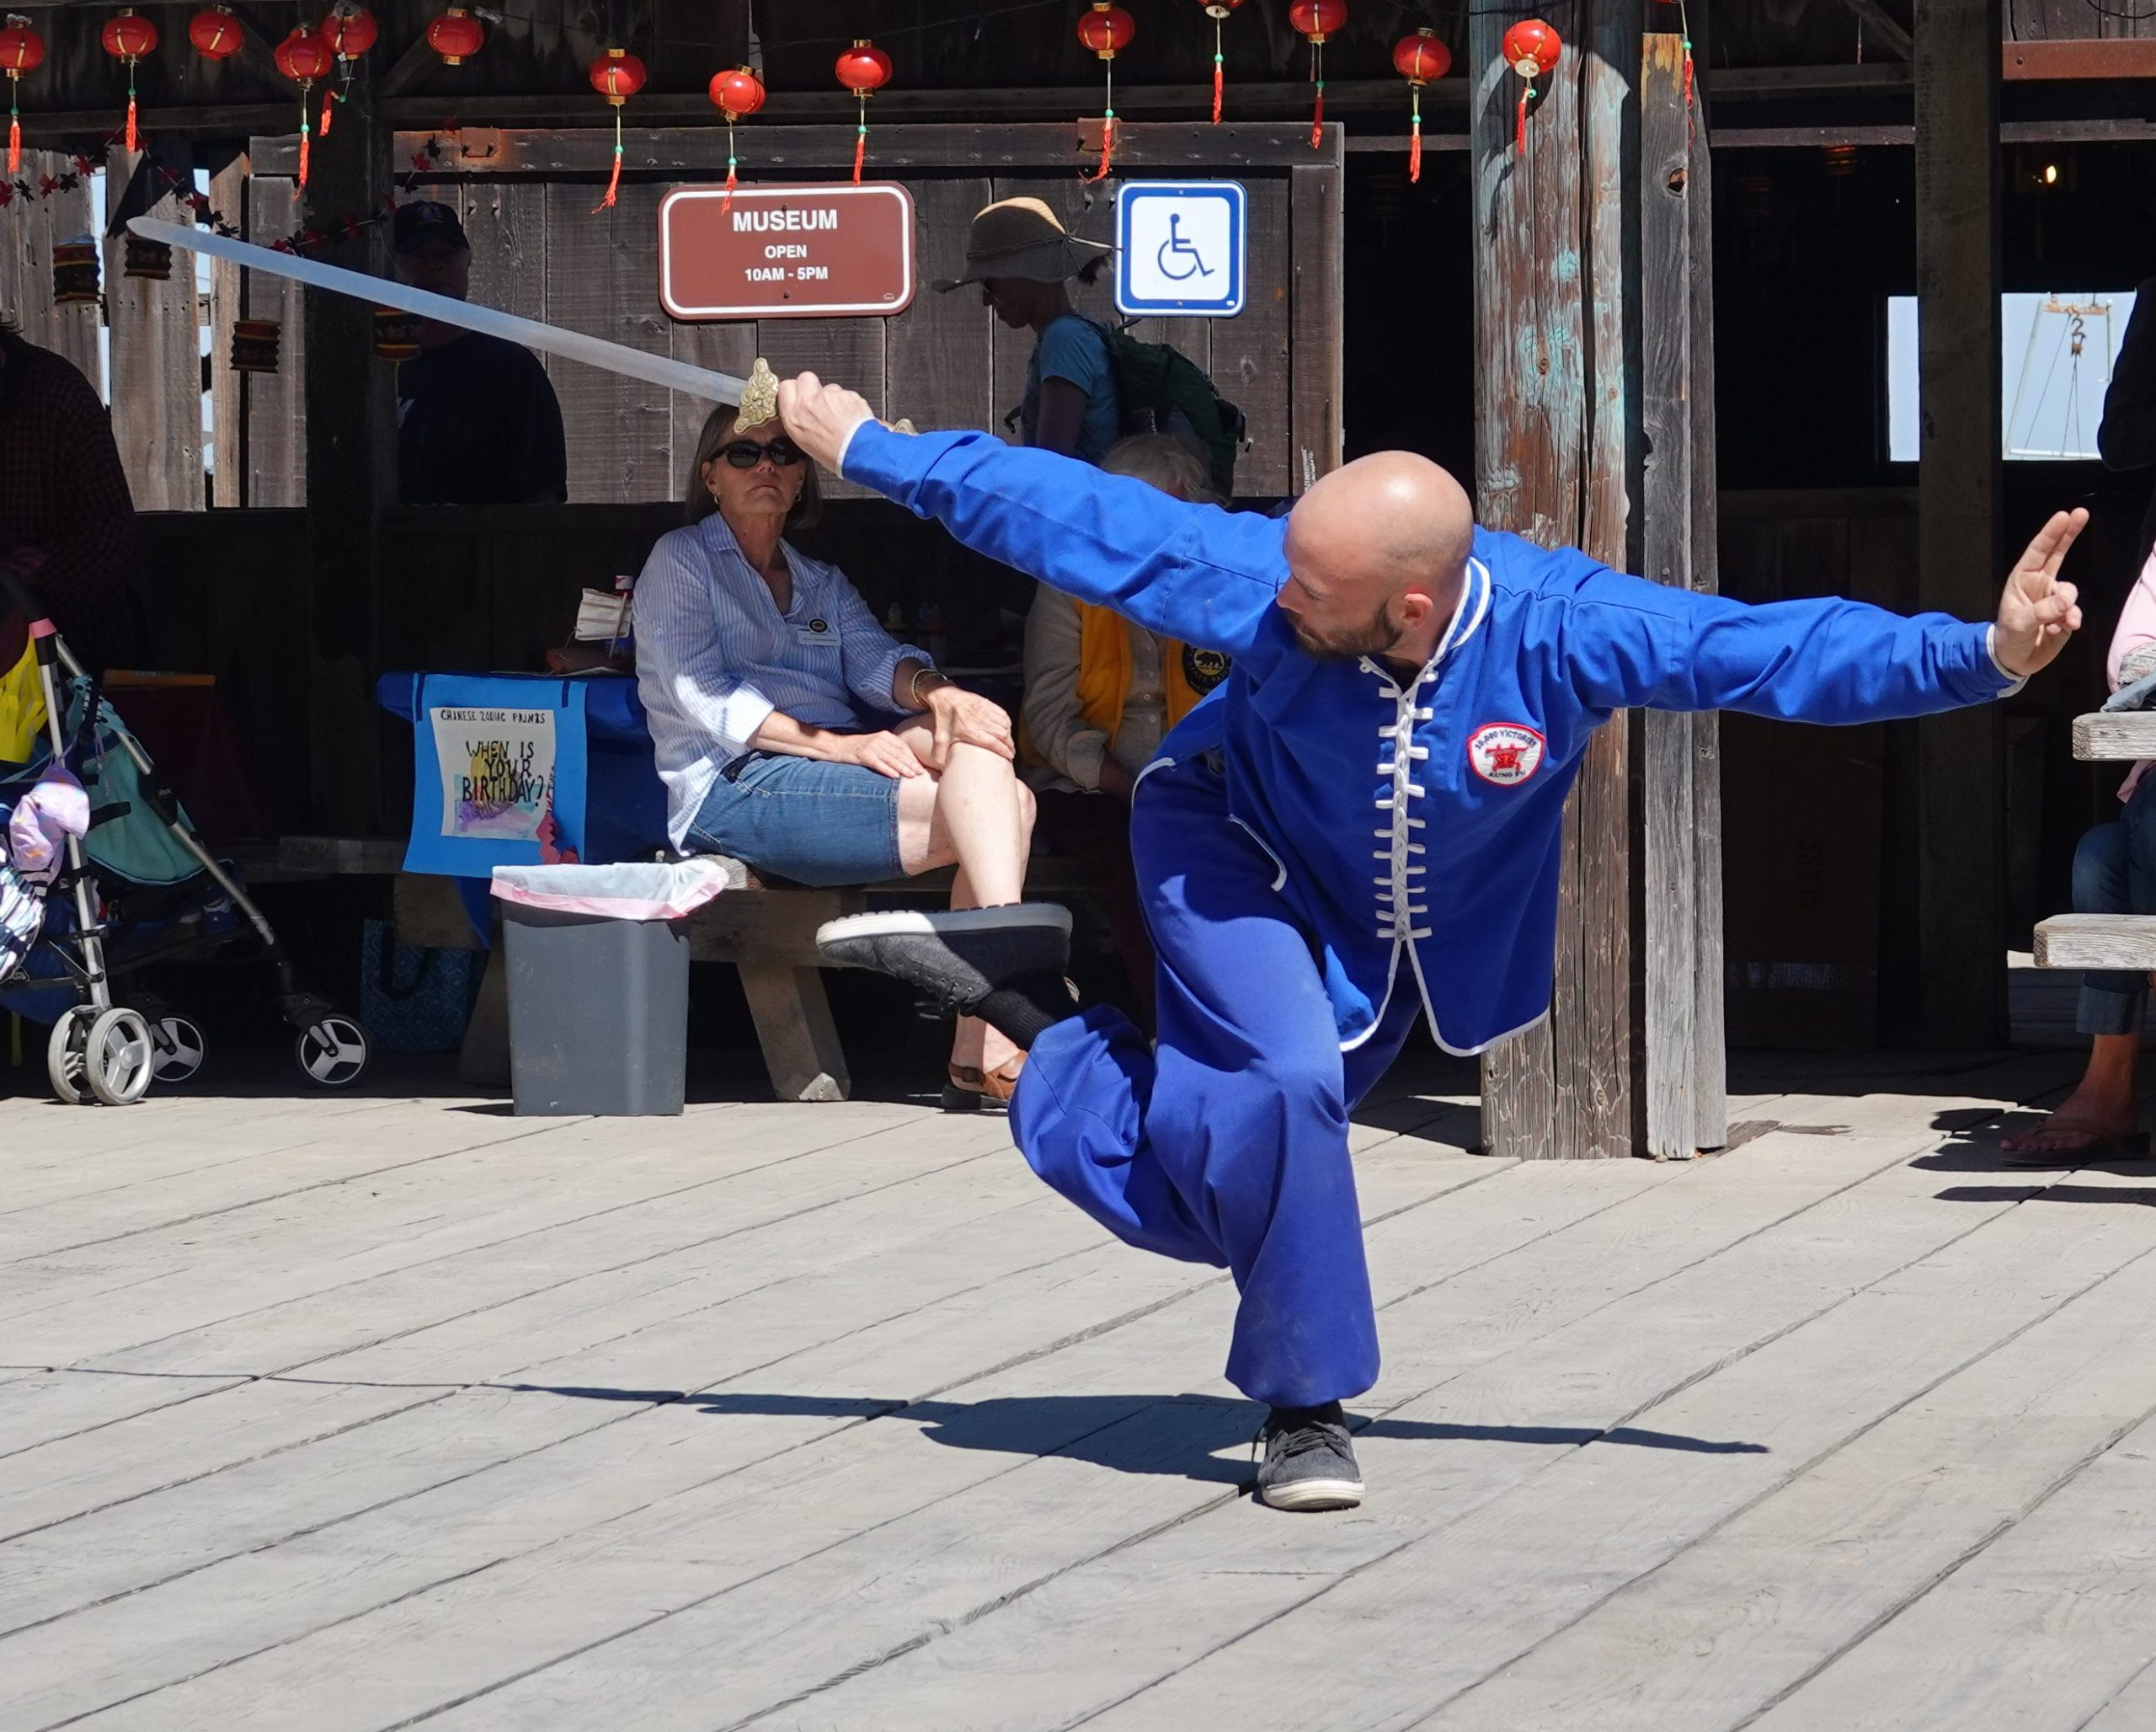 Joseph Vigneri performs the magnificent Kung Fu form known as Chun Yang Sword.